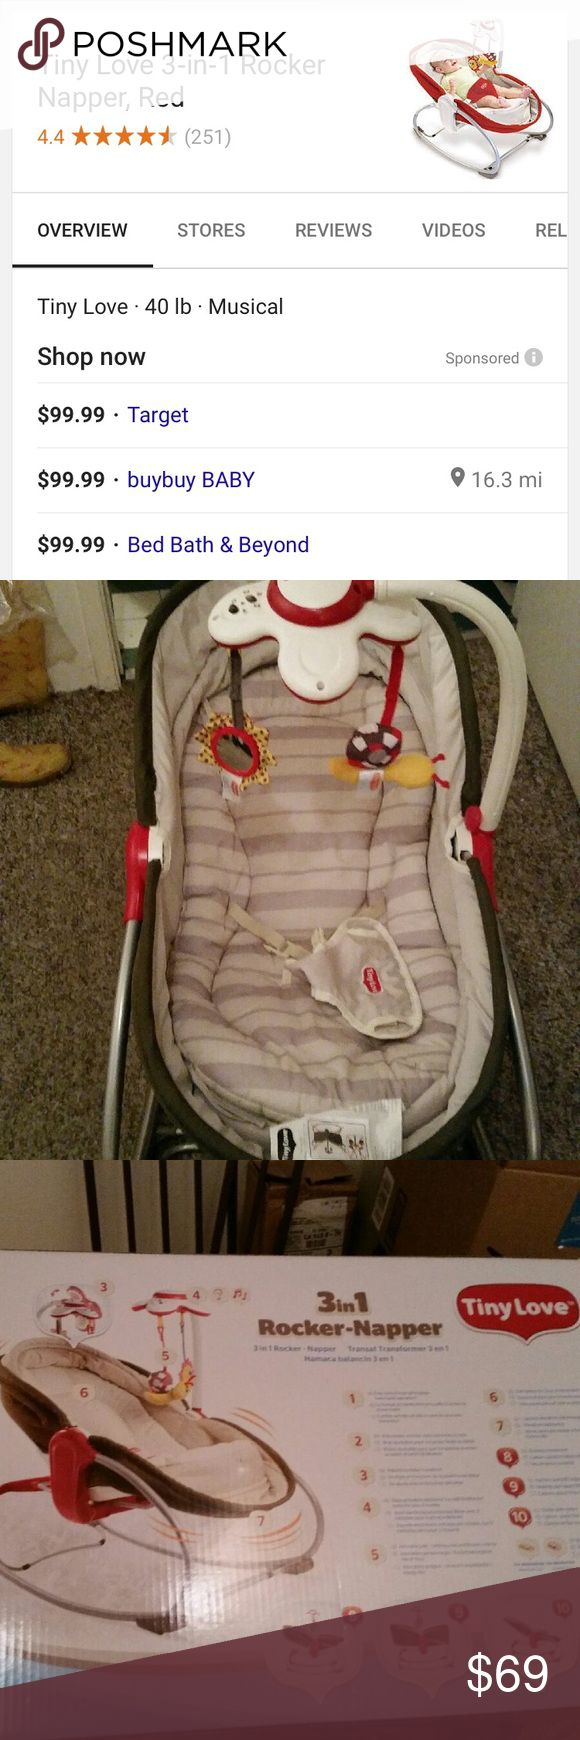 Tiny Love Rocker napper bed Tiny Love 3 in 1.  Rocker napper bed with mobile attachment Accessories